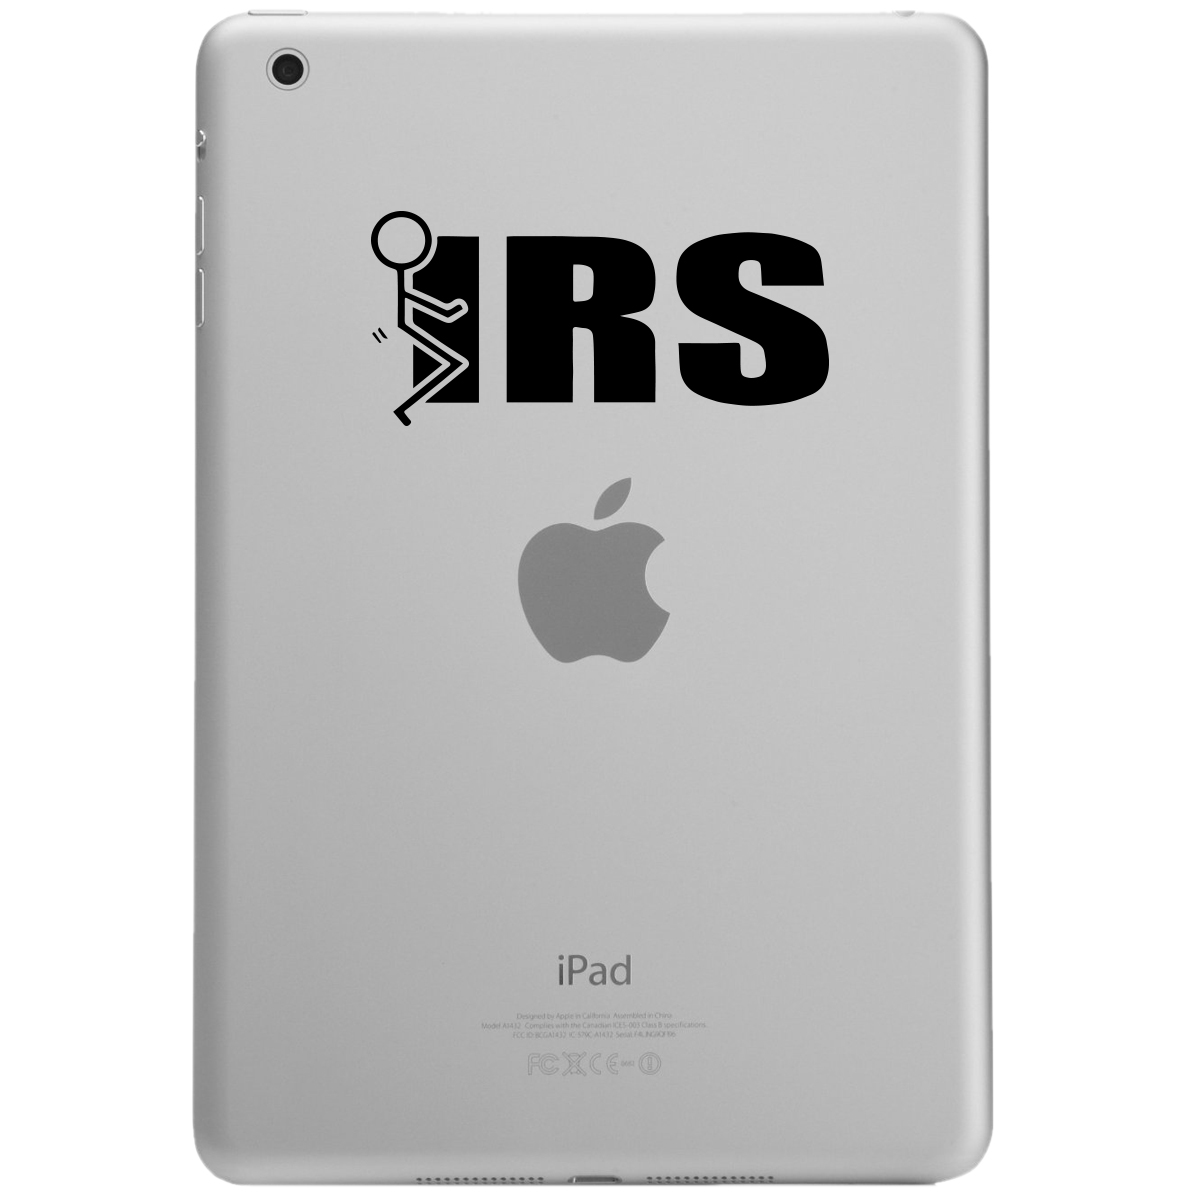 Funny Stick Figure Humping F*ck the IRS iPad Tablet Vinyl Sticker Decal